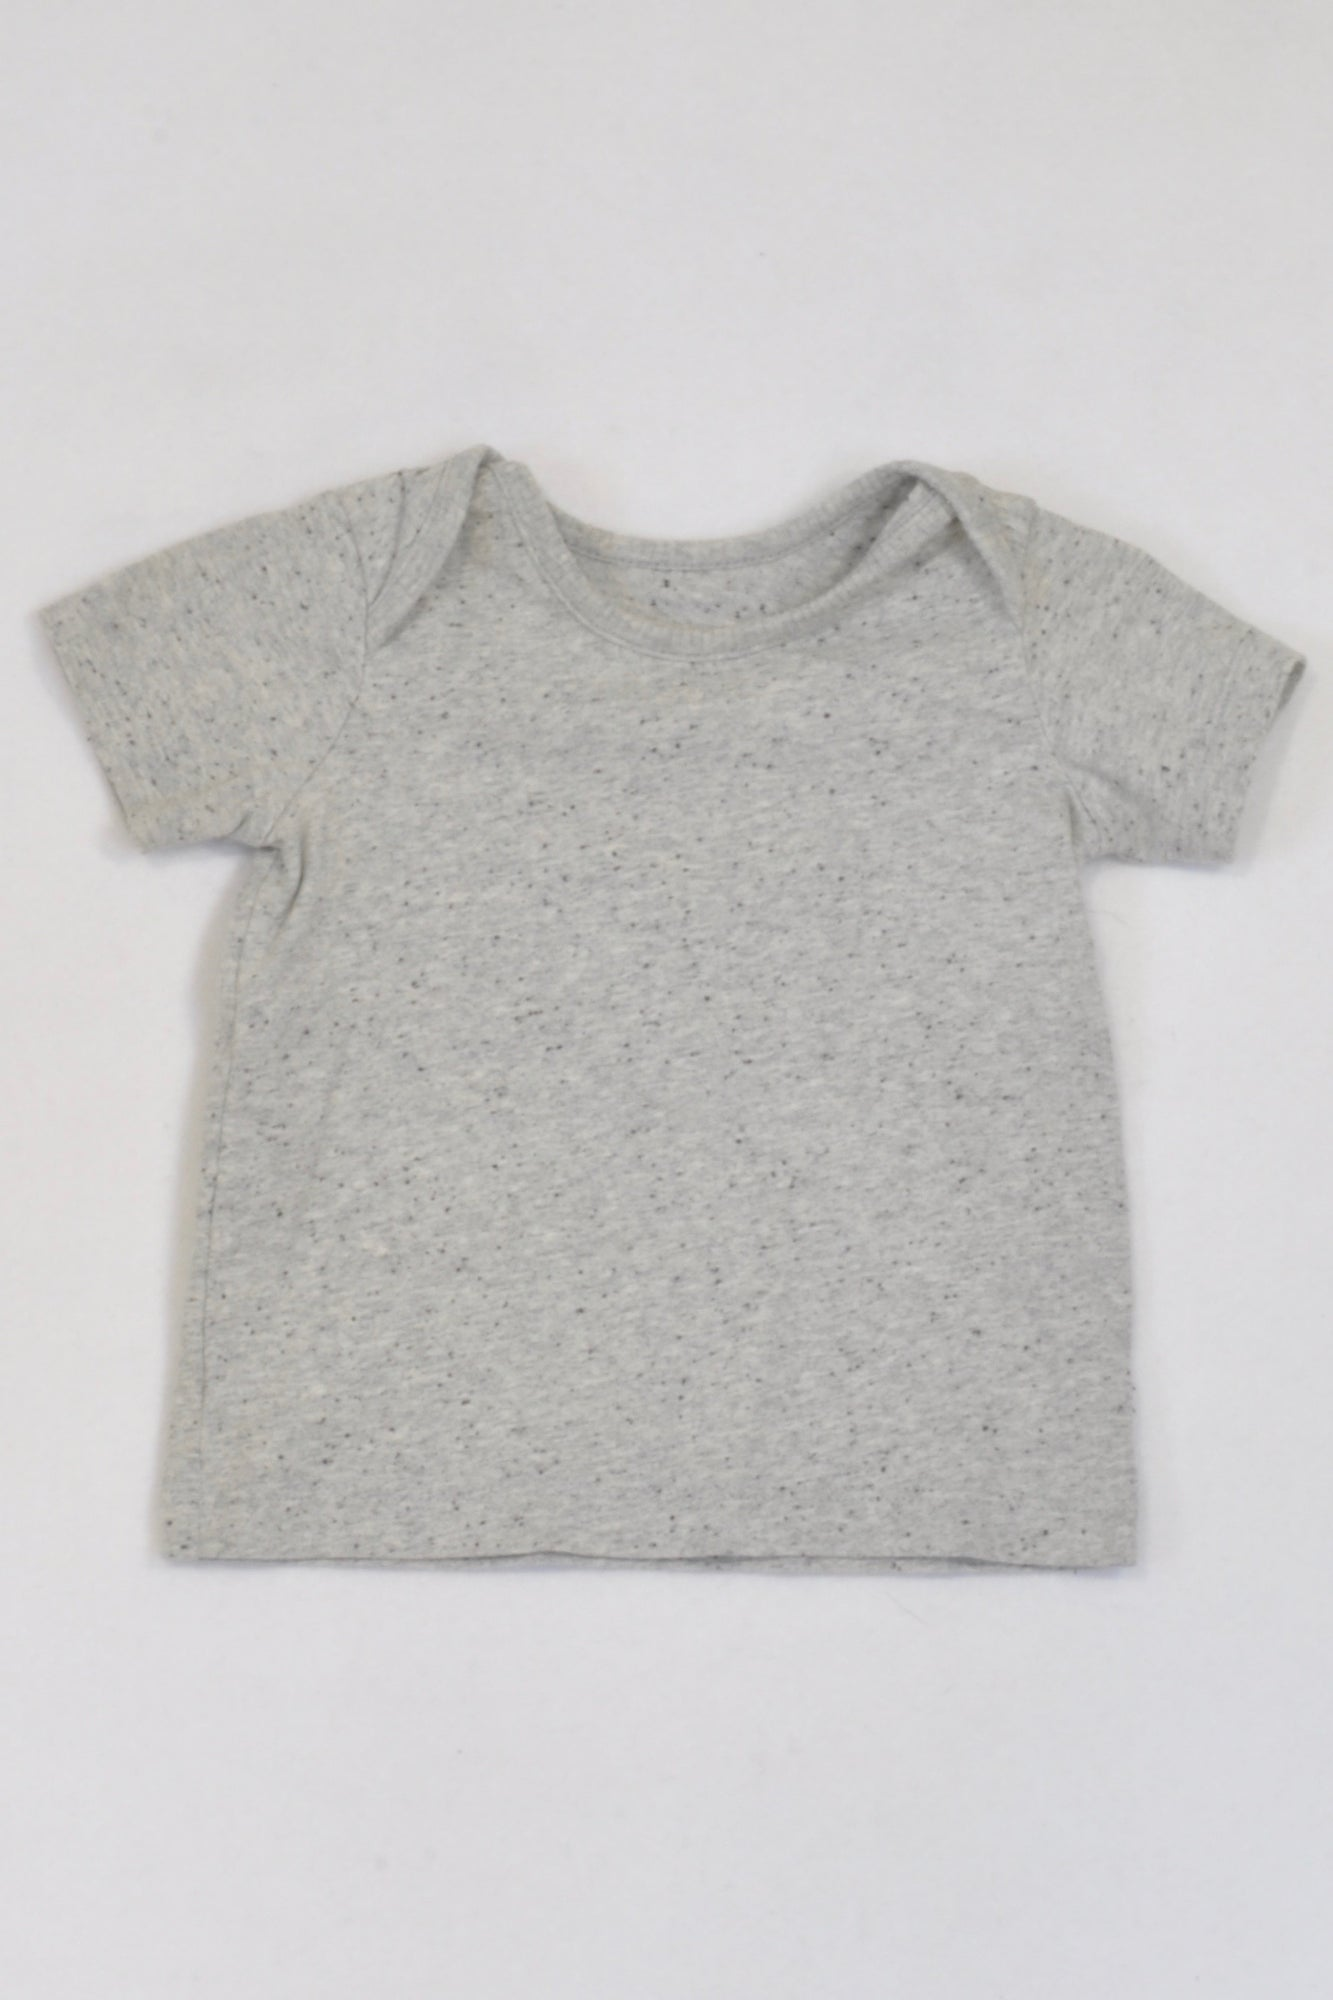 Ackermans Grey Heathered Speckled 1 of 2 T-shirt Boys 6-12 months